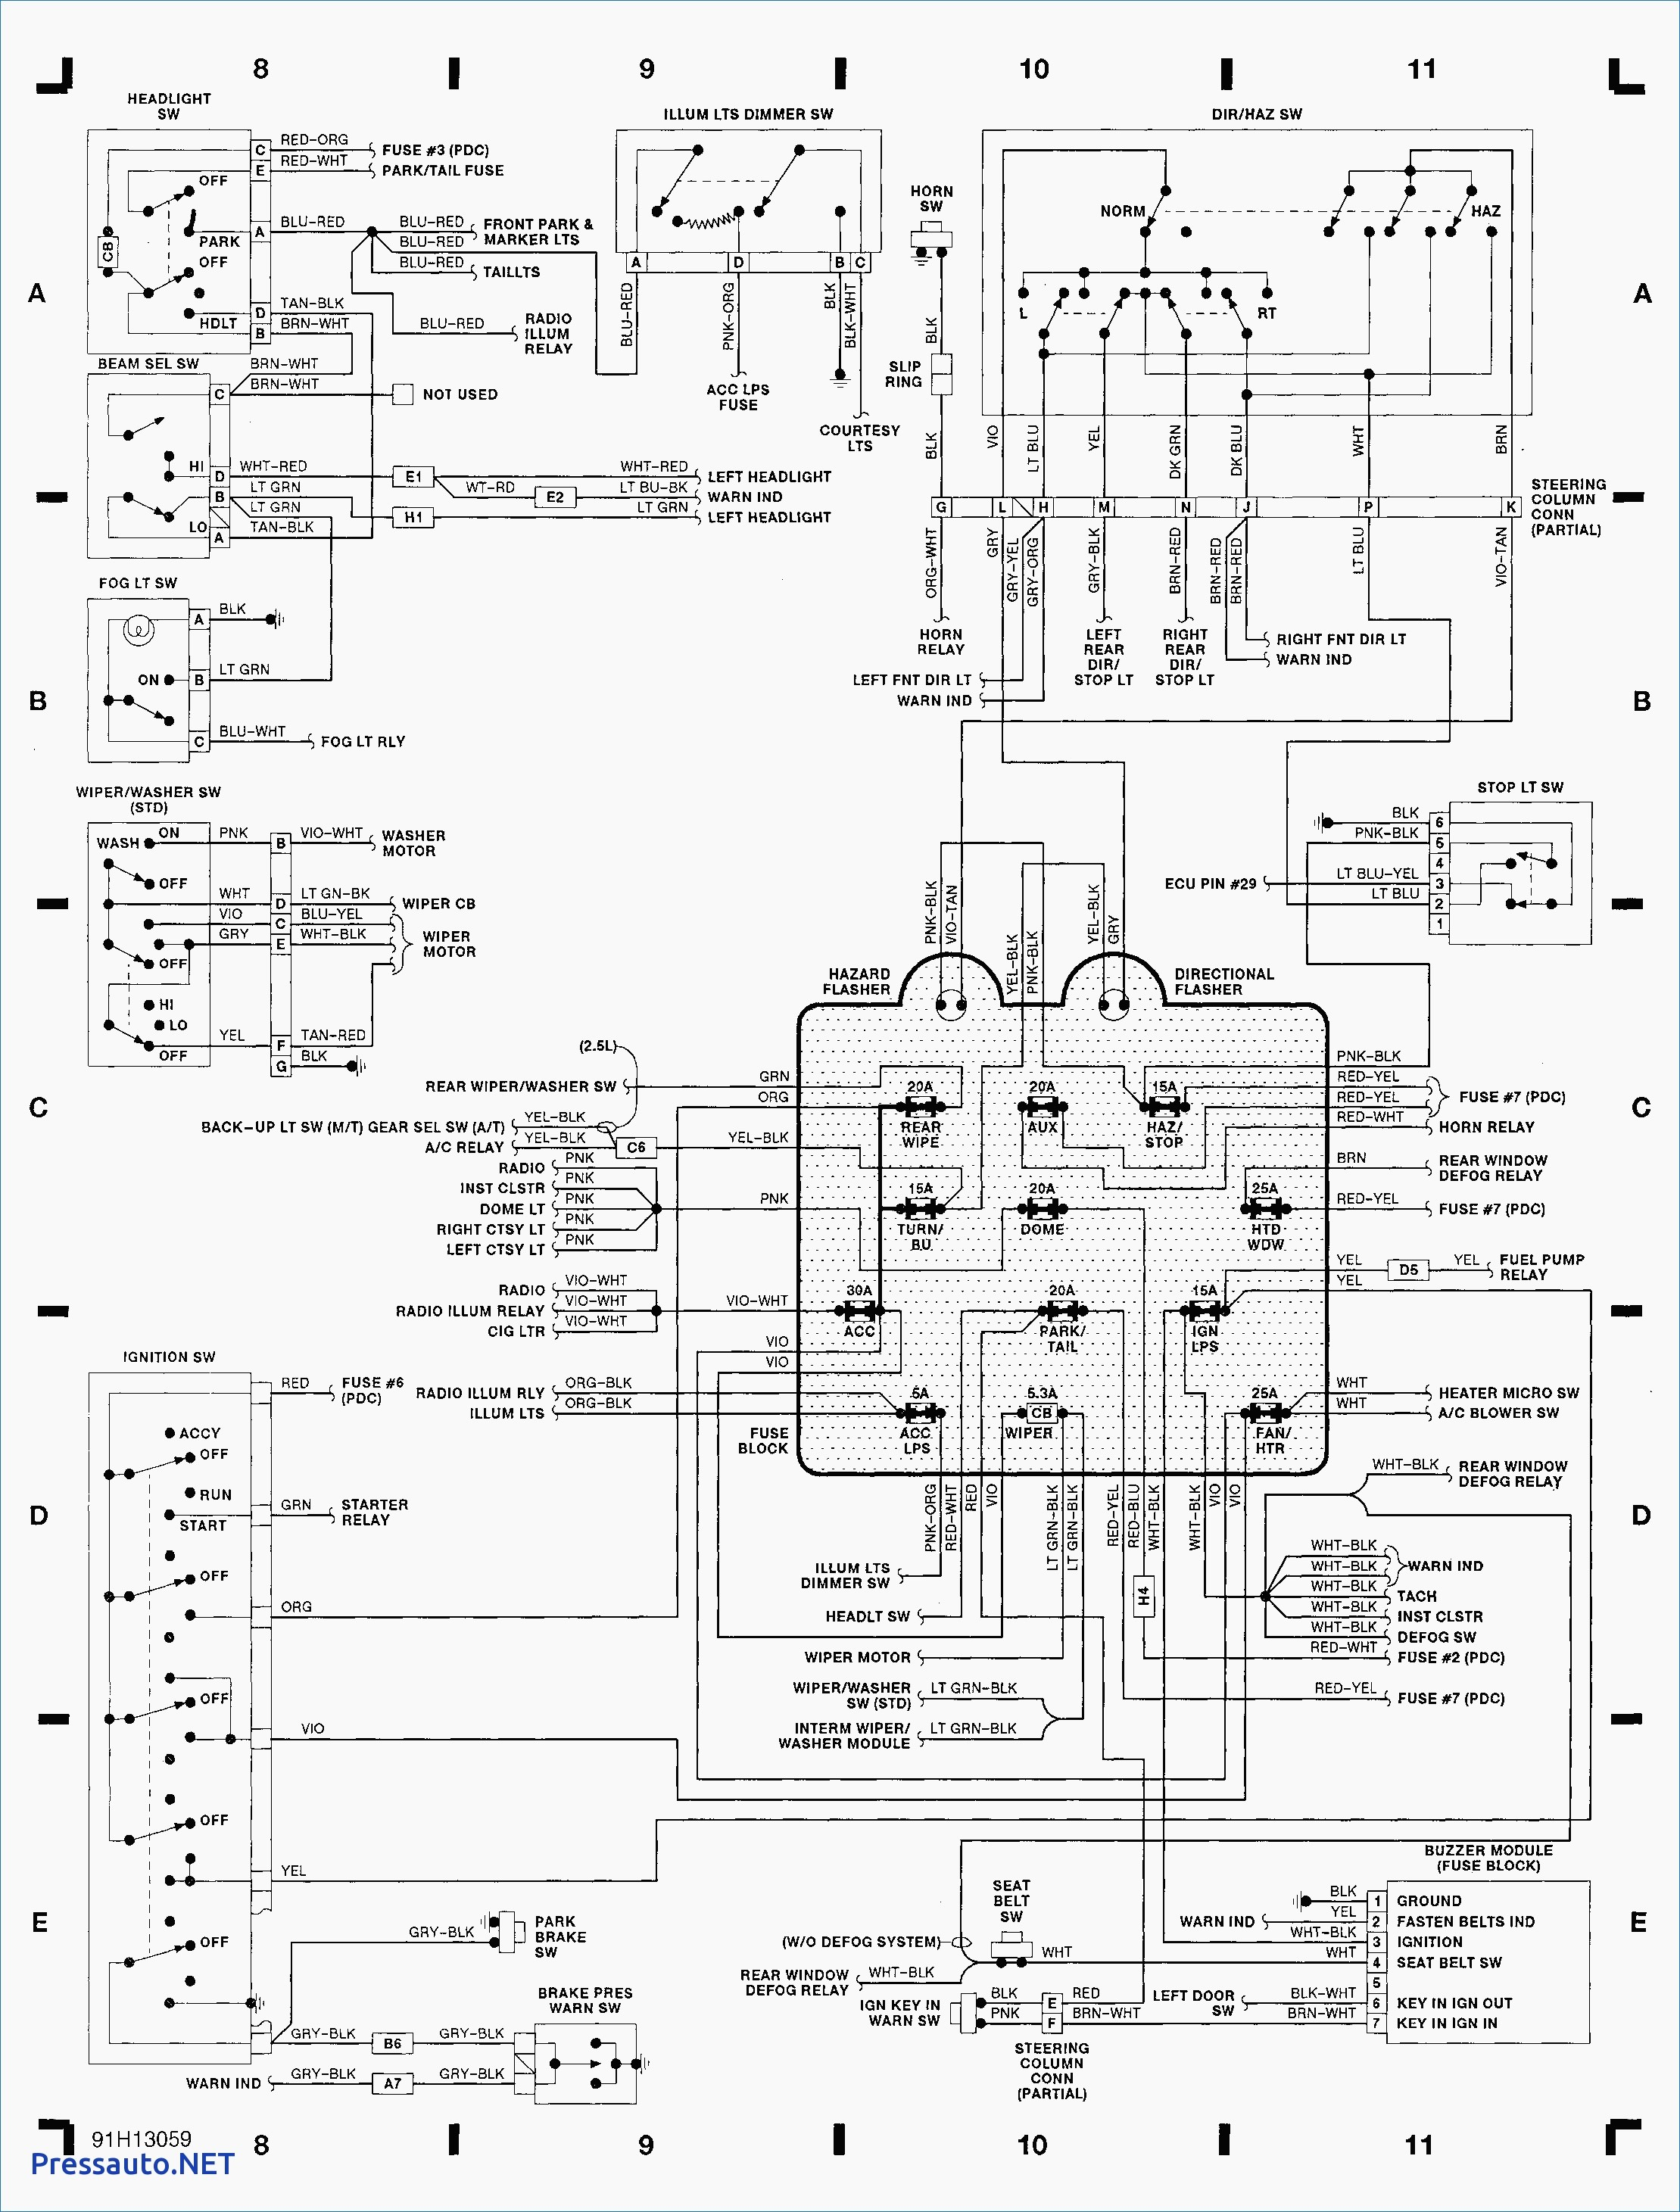 DIAGRAM] 97 Jeep Wiring Diagram FULL Version HD Quality Wiring Diagram -  DNADIAGRAMS.MUSEODELLATERRA.ITWiring Diagram And Fuse Image - museodellaterra